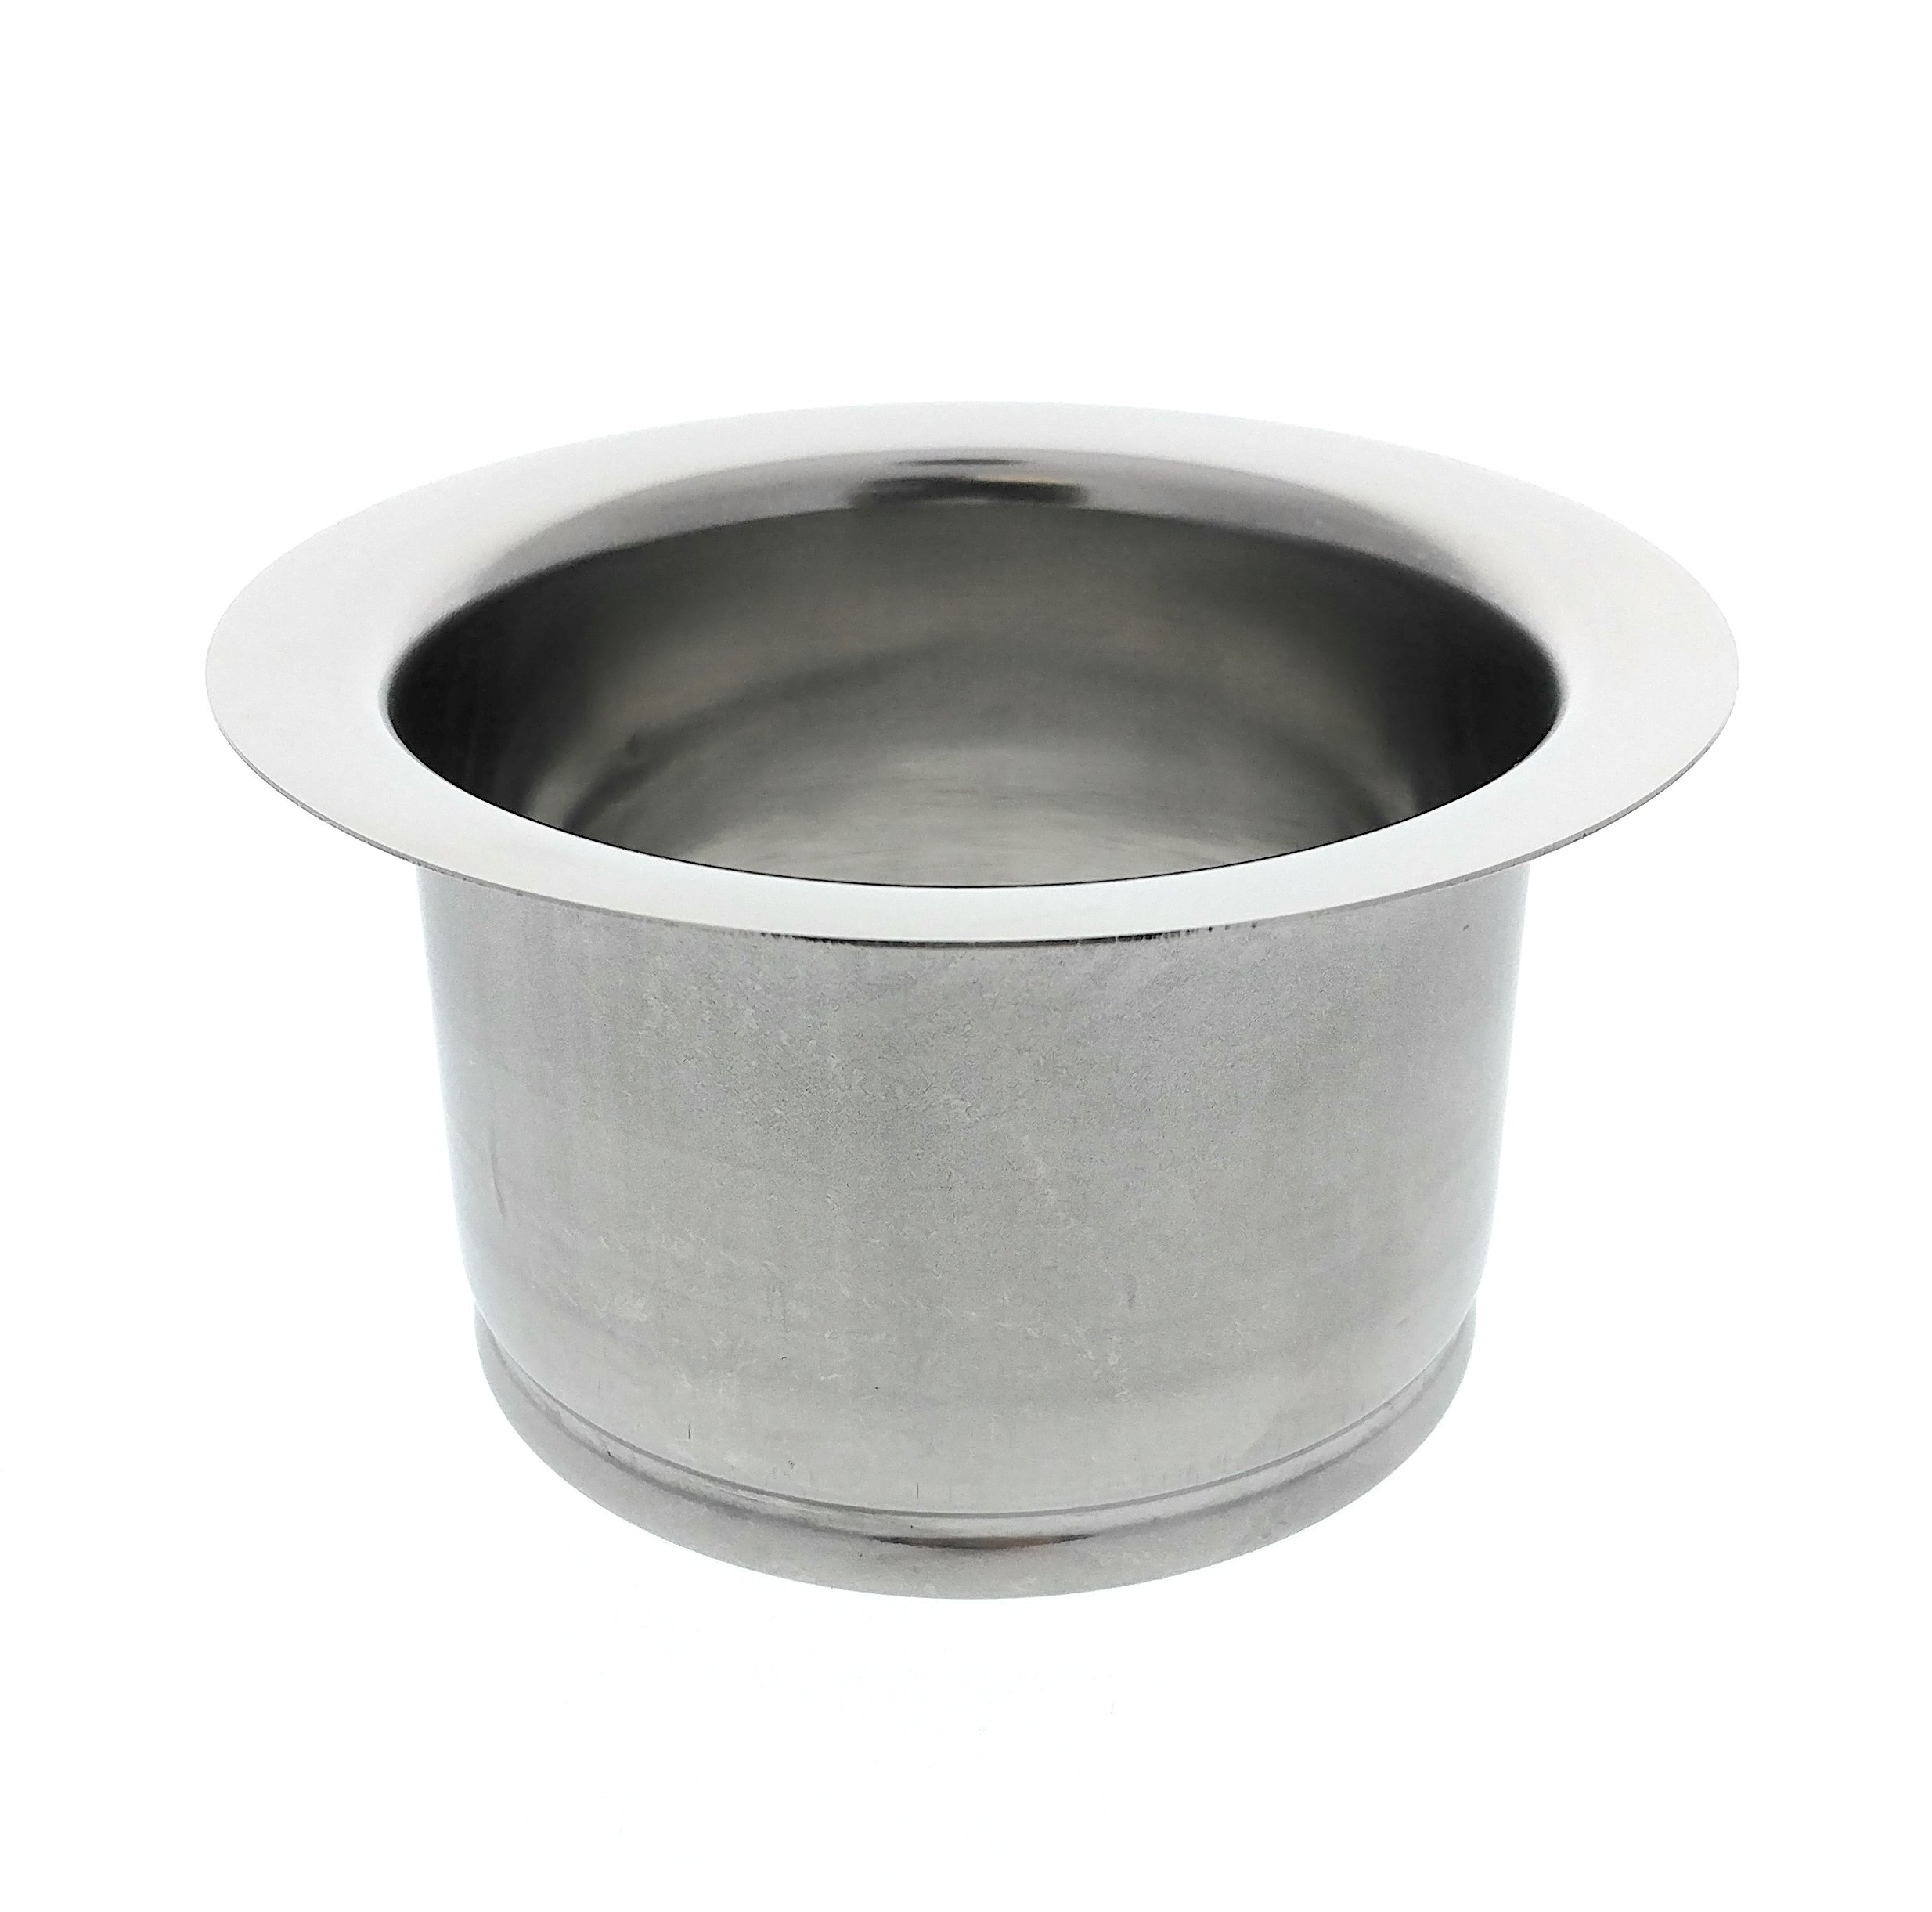 Kitchen Extended Sink Flange, Deep Polished Stainless Steel Flange For Insinkerator Garbage Disposals And Other Disposers That Use A 3 Bolt Mount and A Thicker Sink, By Essential Values by Essential Values